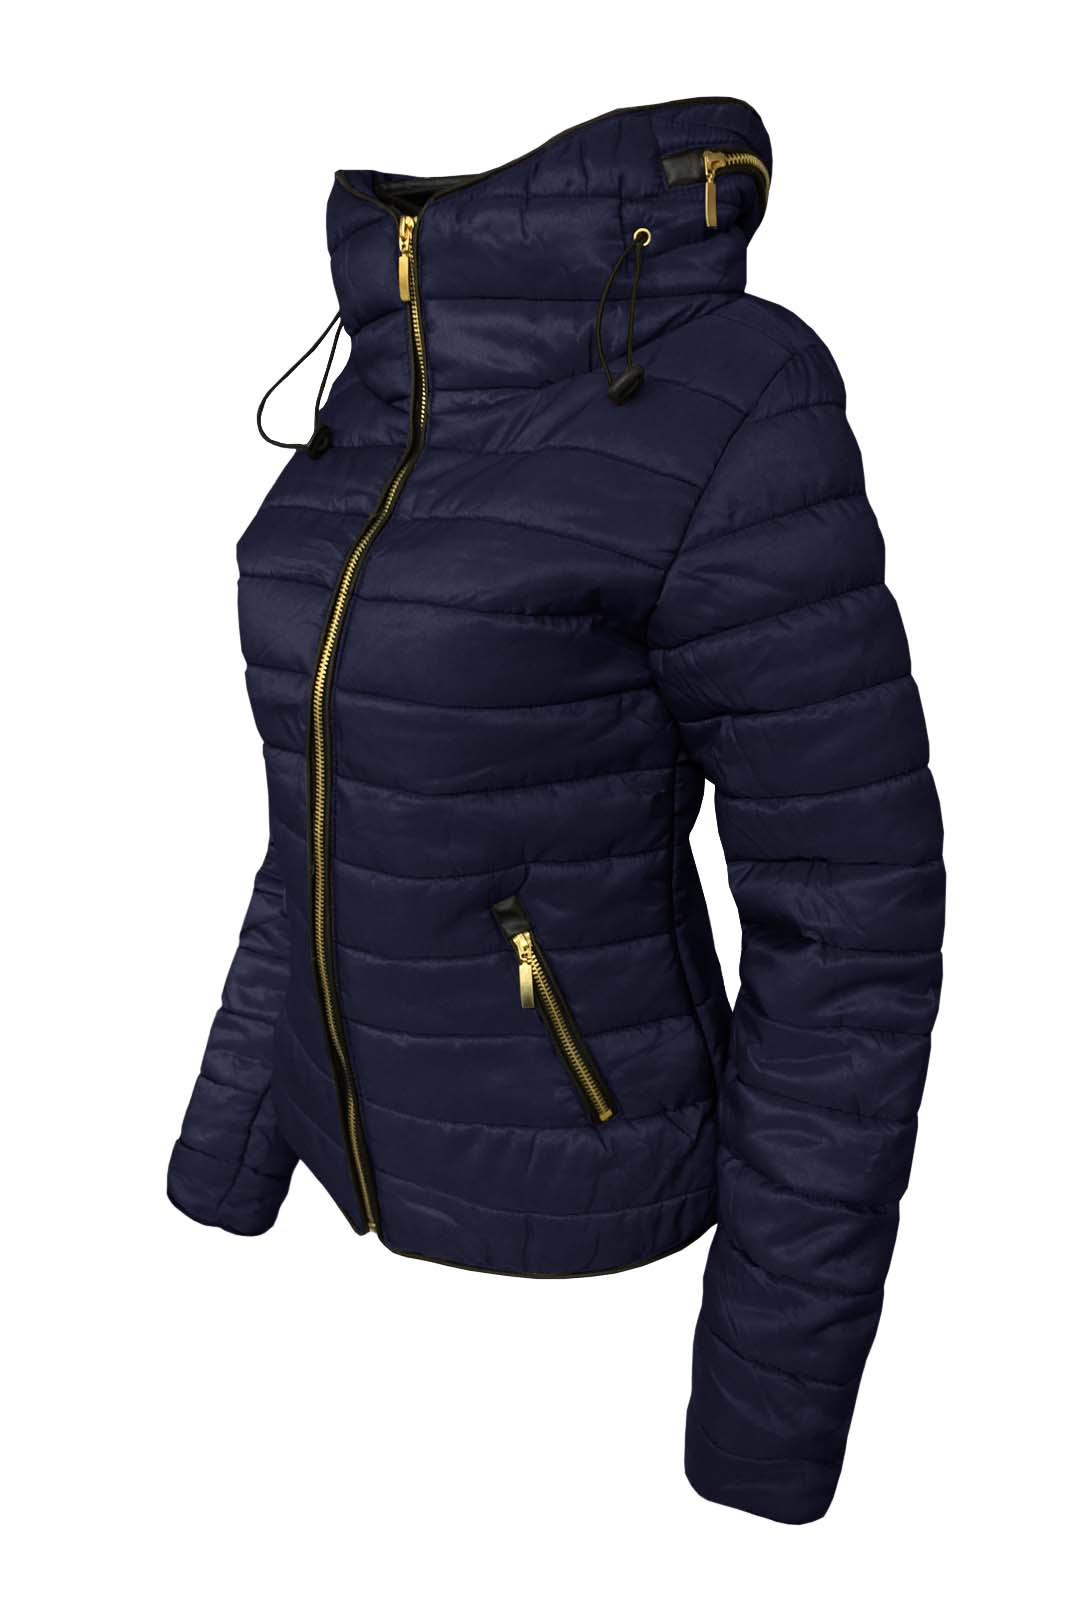 Womens padded jacket